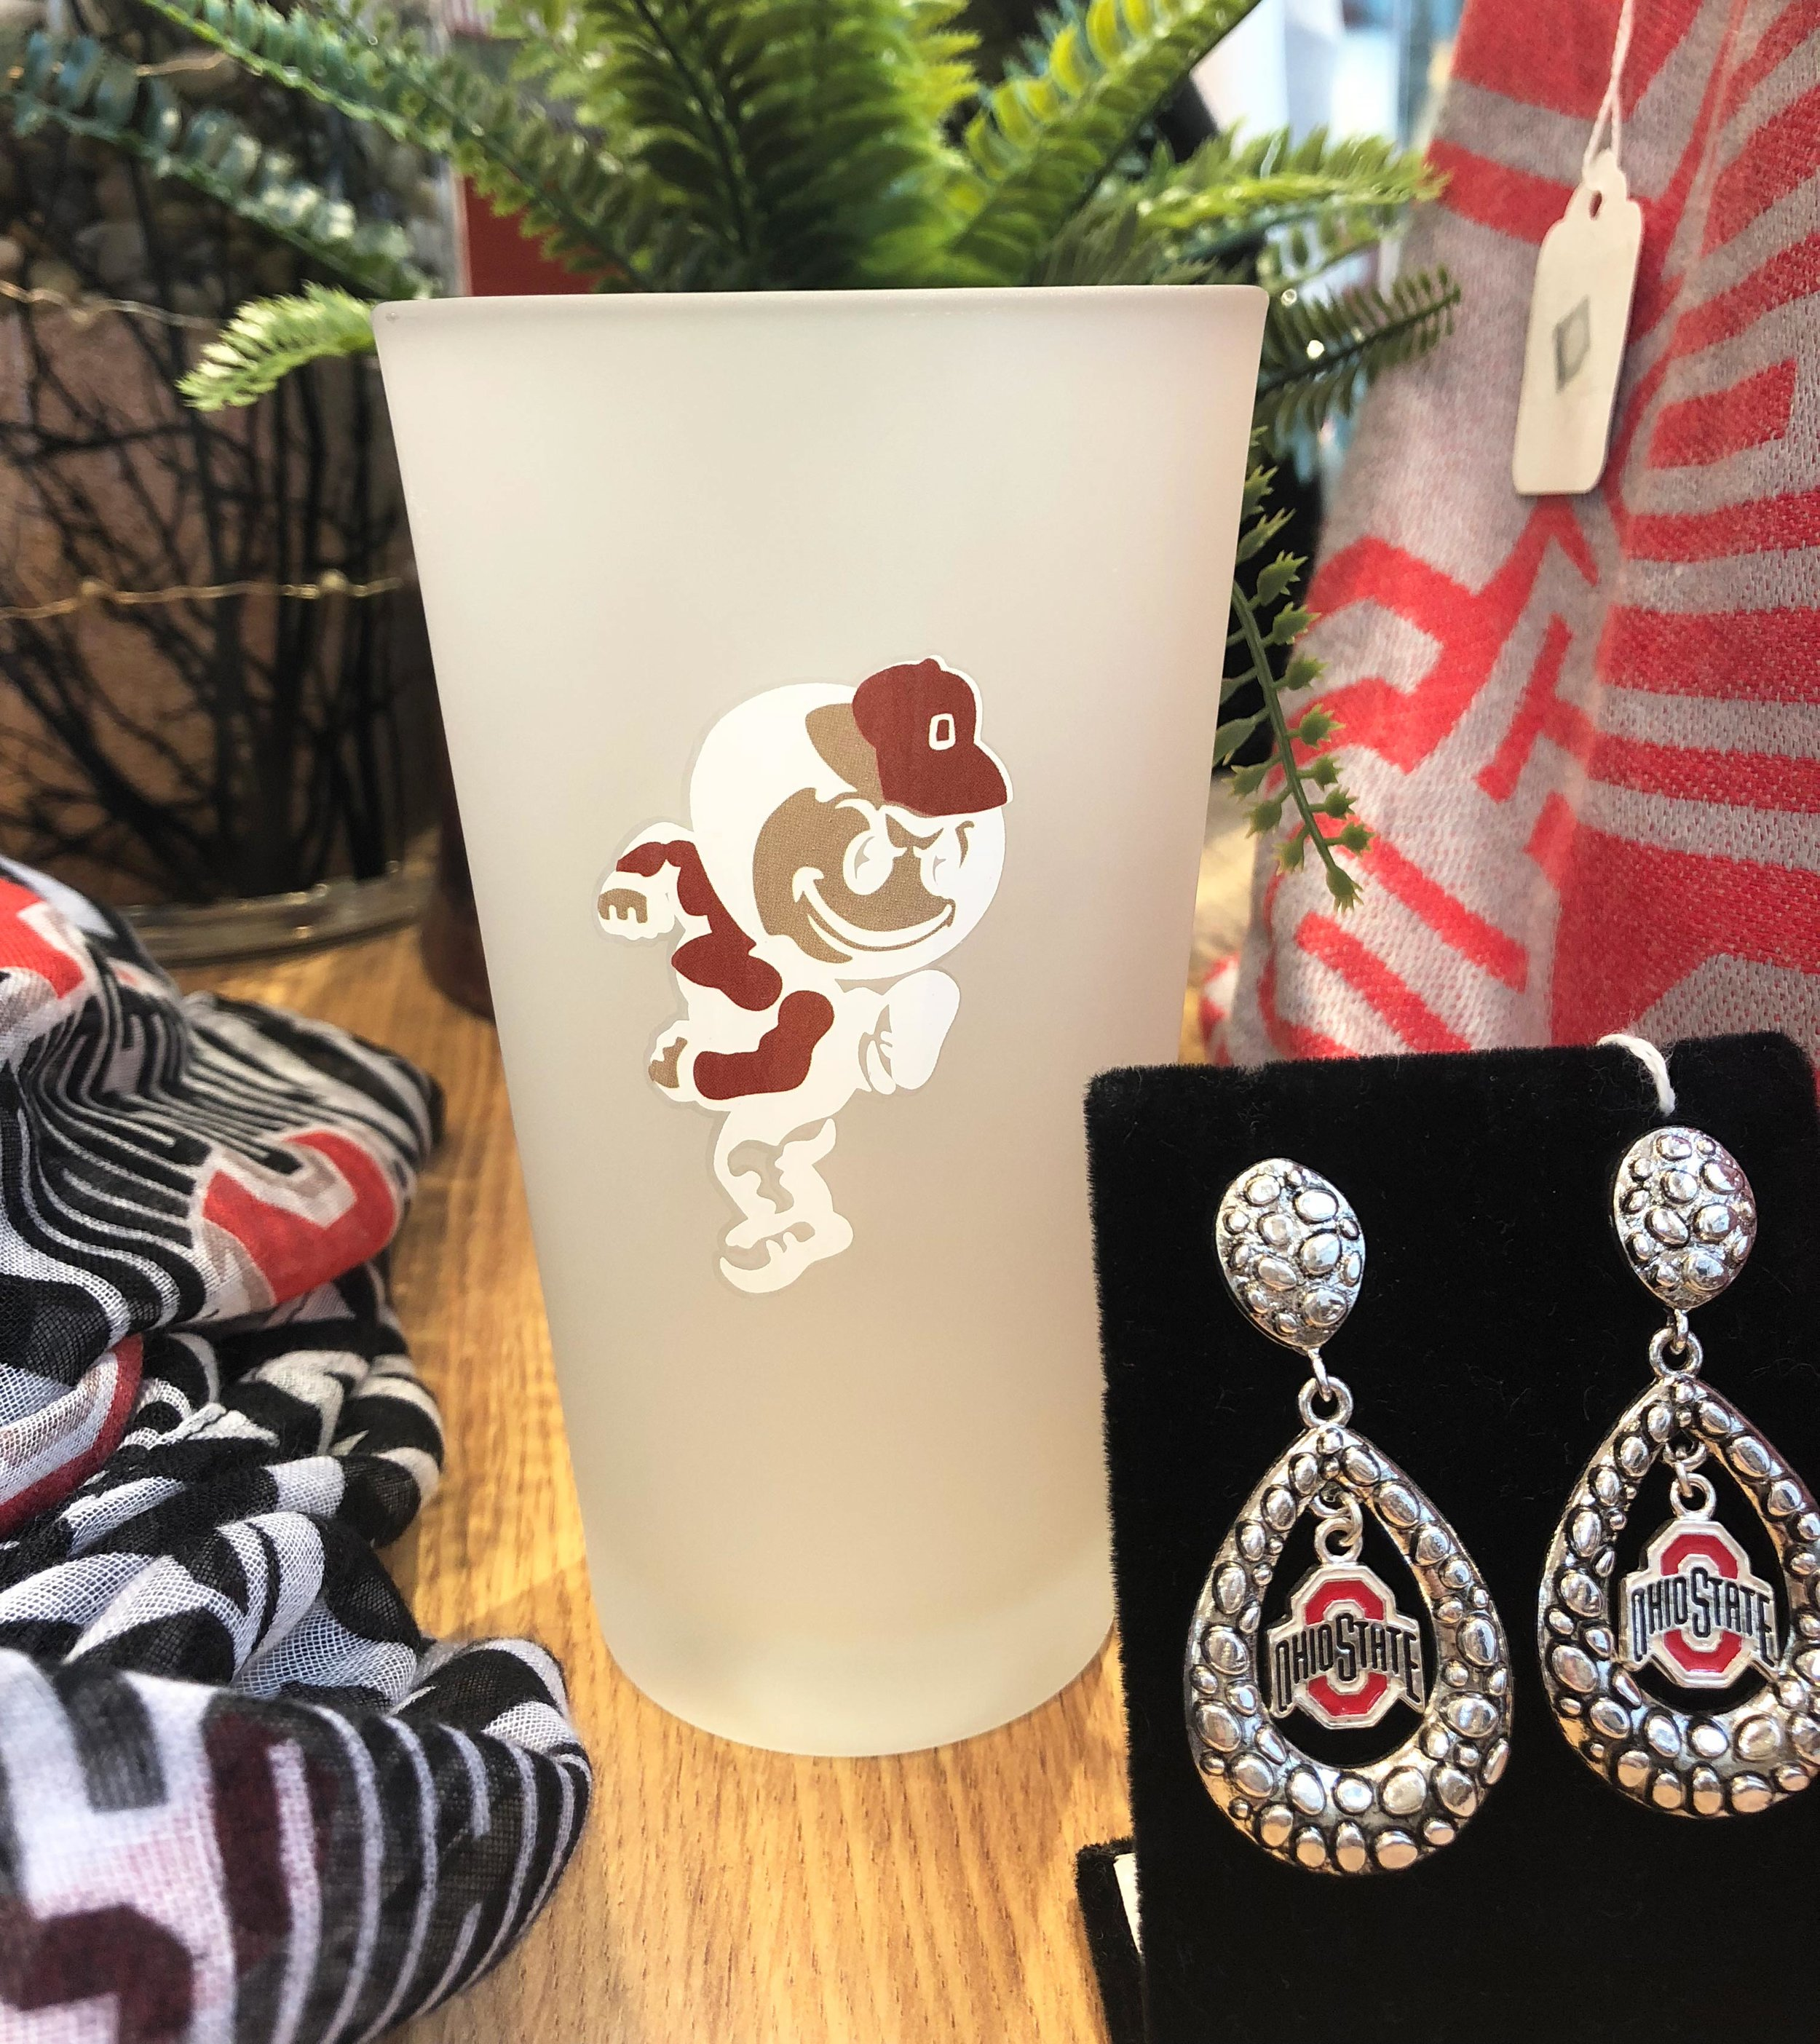 OSU Buckeye Fan Fare - jewelry, handbags, accessories, mugs, pint glasses, throws, blankets